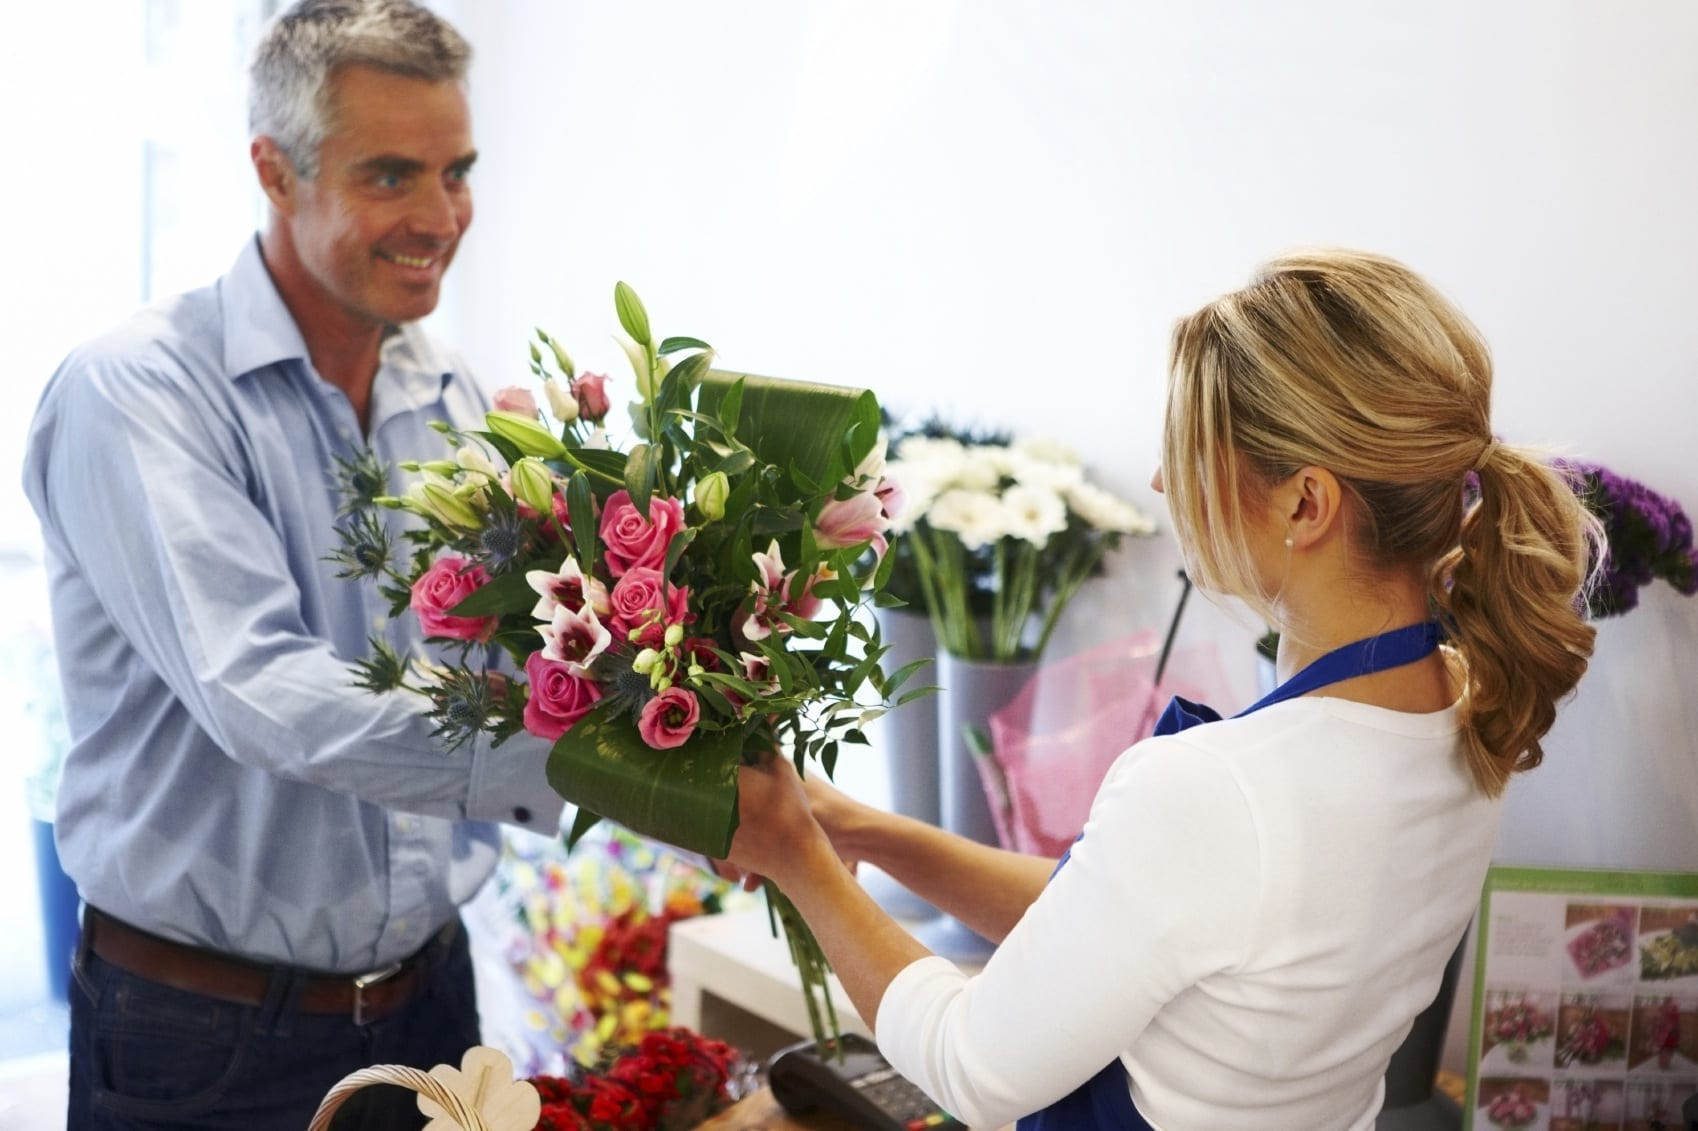 FMRF Study Identifies Floral Purchasing Barriers